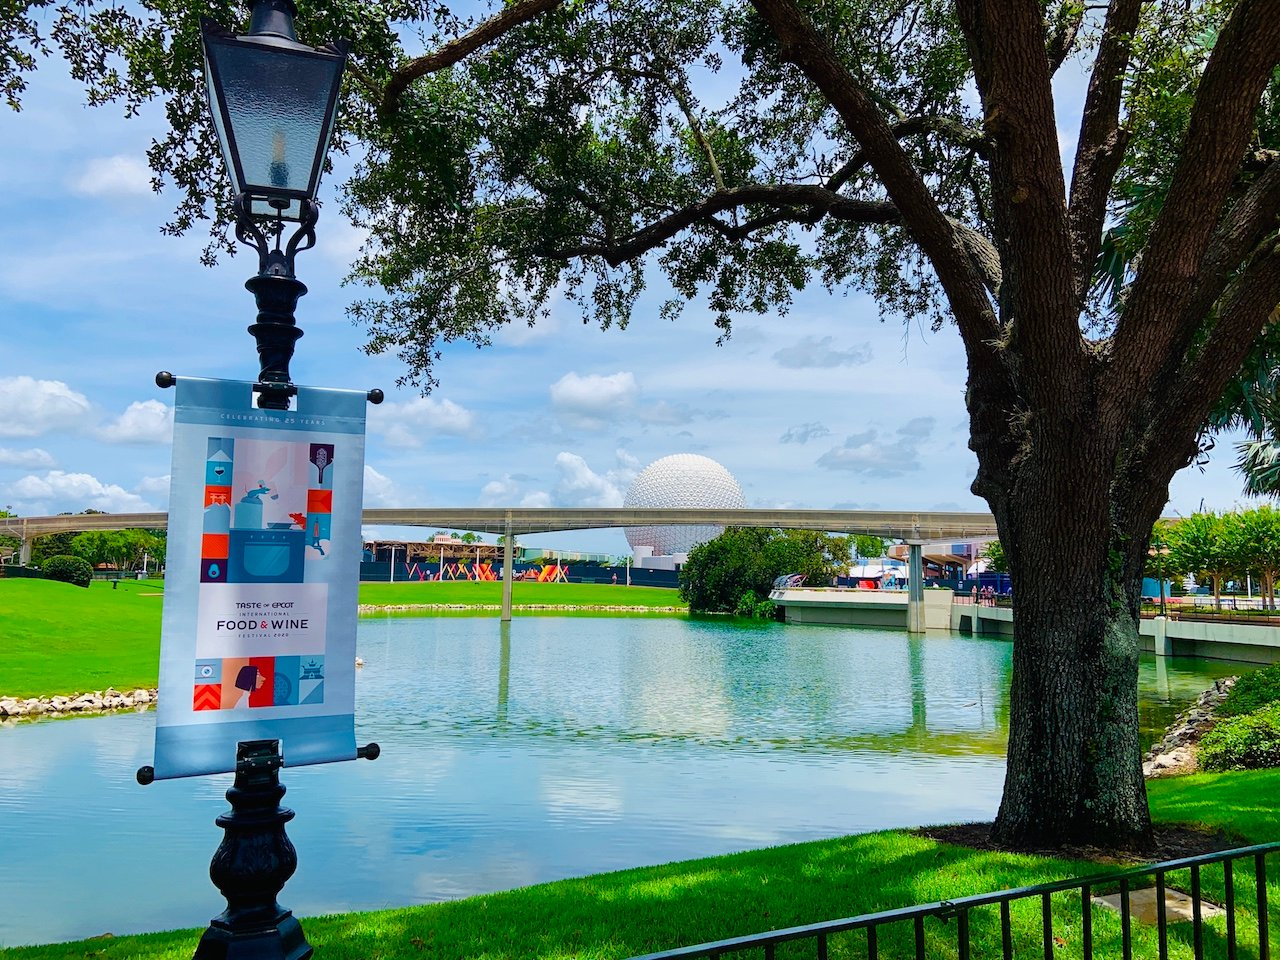 Your Guide to the 2020 Taste of EPCOT International Food and Wine Festival - Orlando Magazine